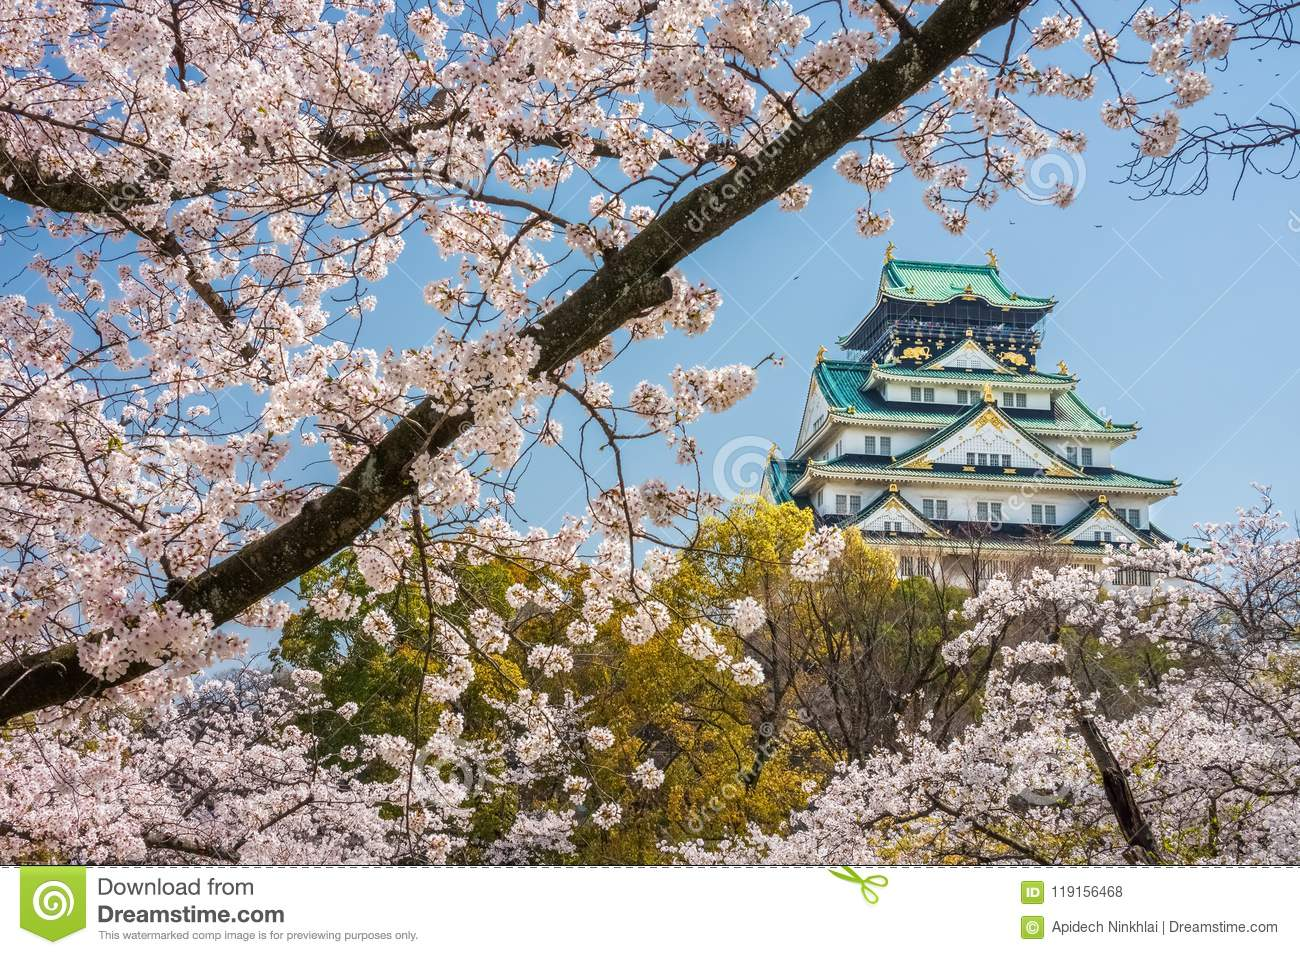 Main tower of Osaka Castle with cherry blossom flowers view from Nishinomaru Garden